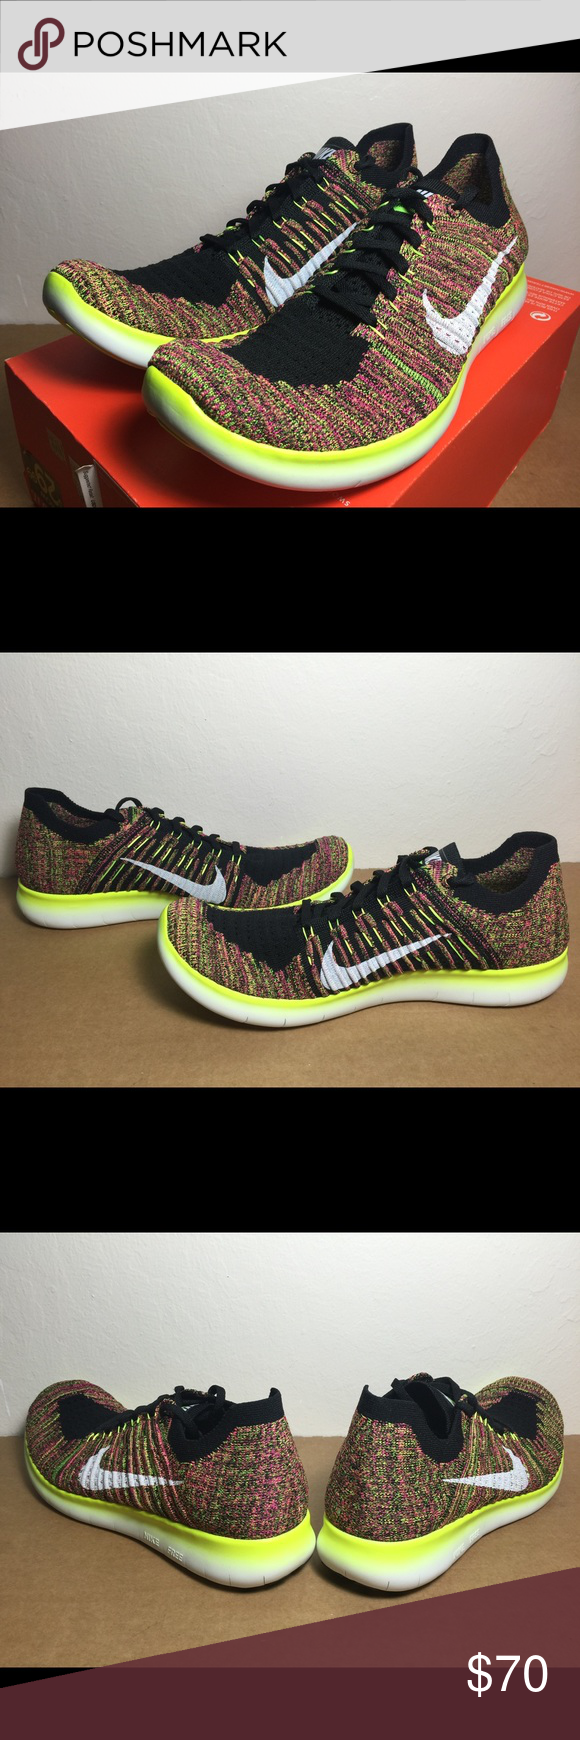 63279aa5808d Nike Free RN Run Flyknit OC Olympic SZ US WMNS 8.5 Brand new with original  box (no lid)